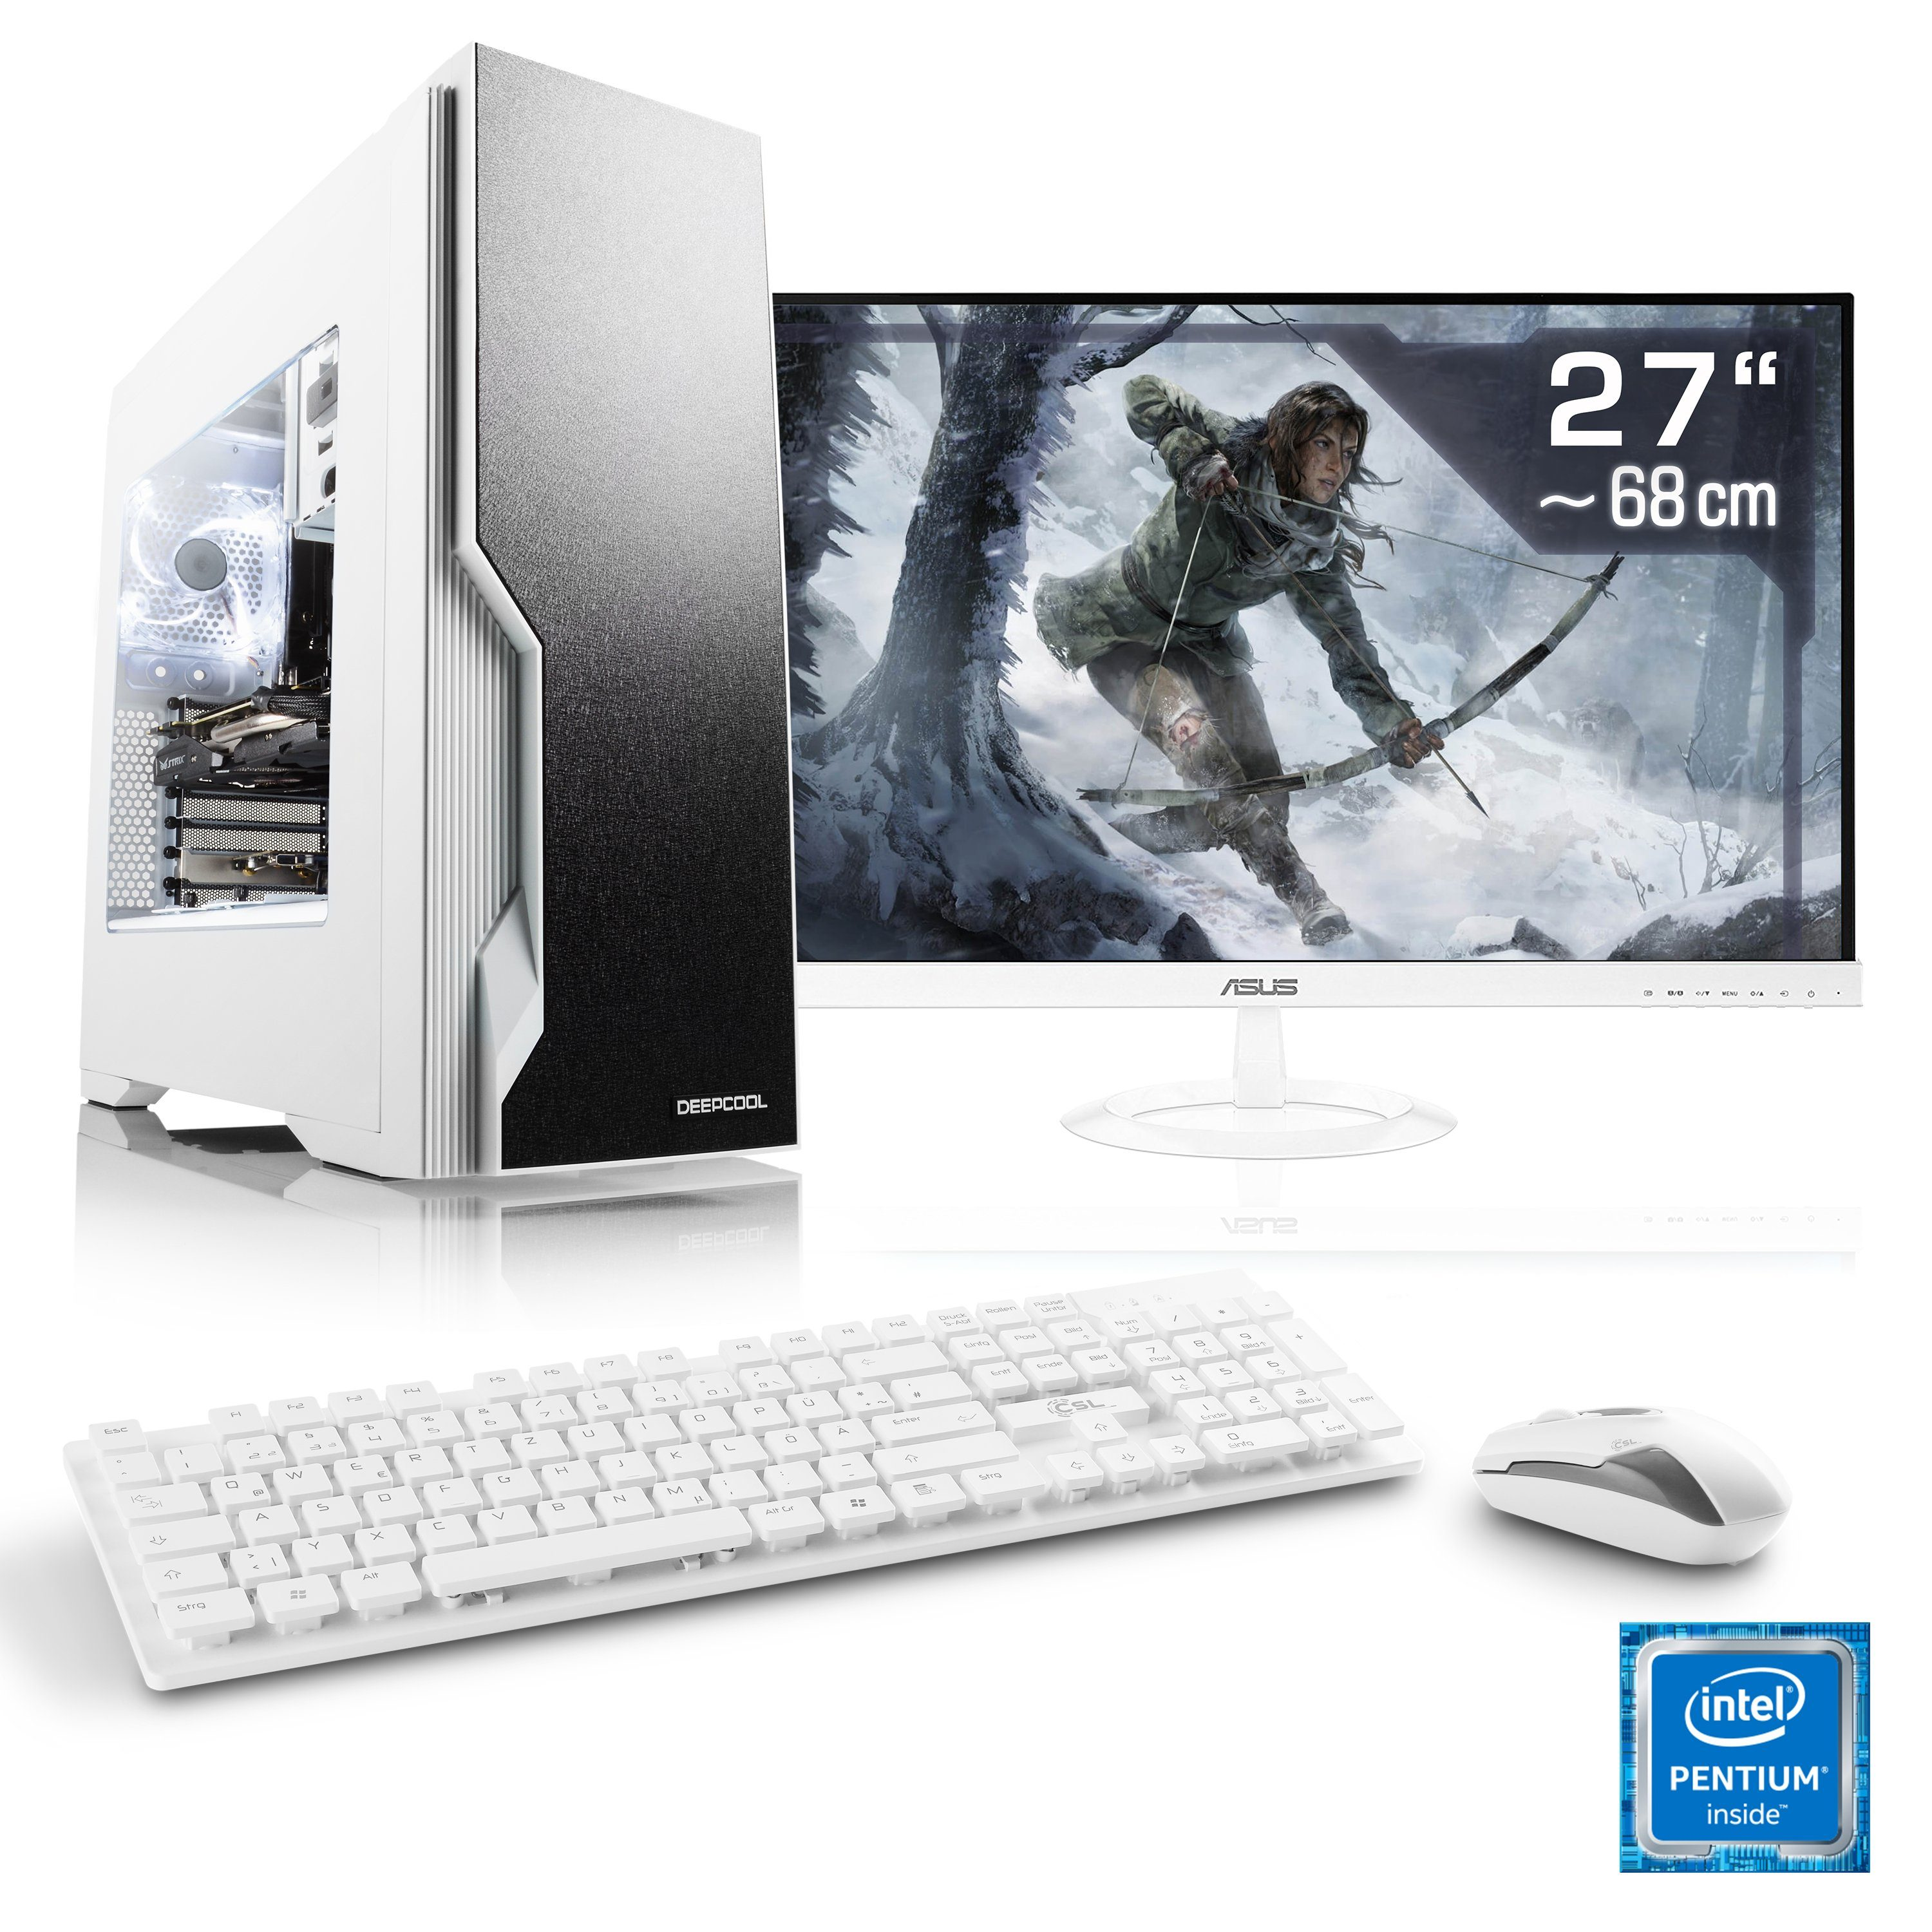 "CSL Gaming PC Set Pentium G4560 | GTX 1050 Ti | 16 GB DDR4 | 27"" TFT »Speed T1564 Windows 10 Home«"